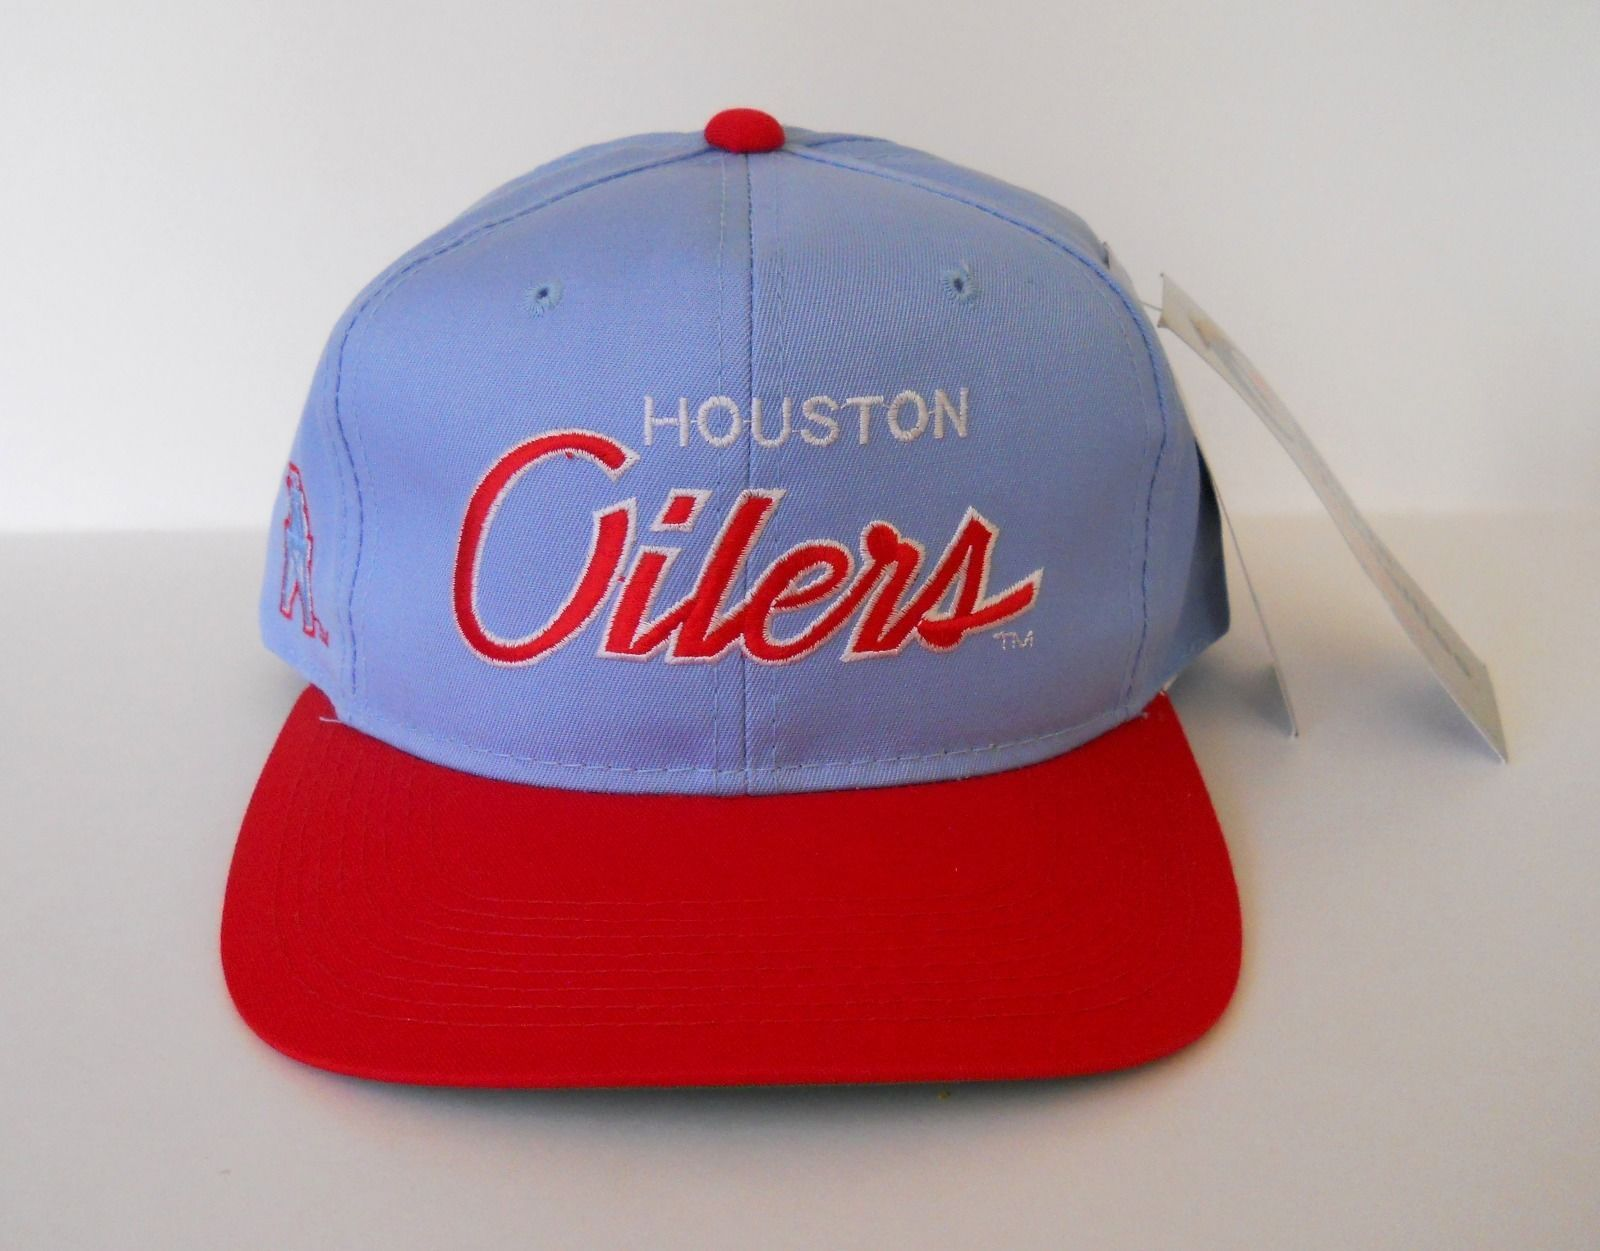 2c72a00df ... promo code for sports specialties houston oilers snapback hat early 90s  nfl new with tags ebay